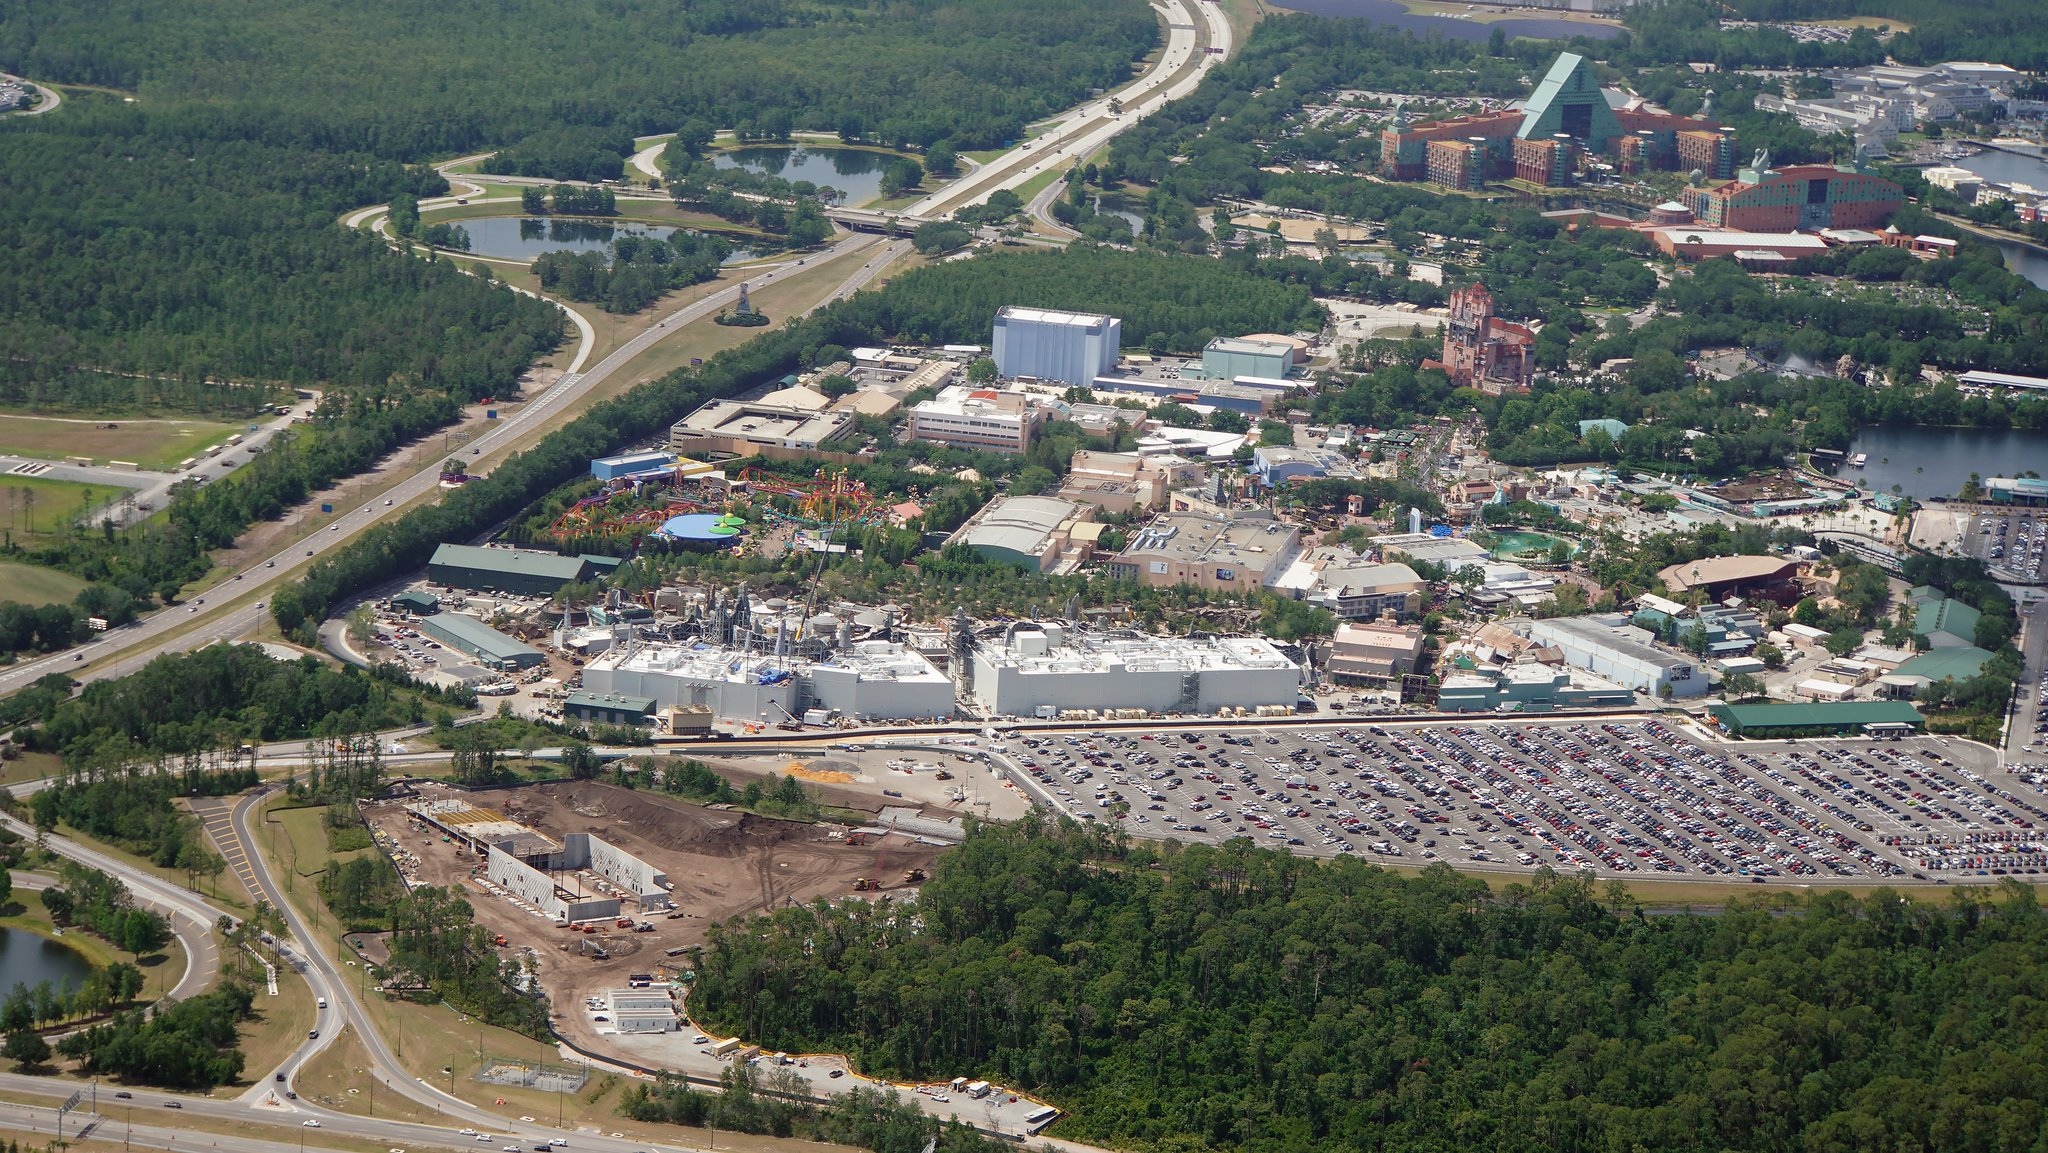 Aerial view of Star Wars Hotel (lower left) relative to Disney's Hollywood Studios and Epcot resorts. Hotel will have a small number of guests, said to be in a 2-day fully immersed story. https://t.co/12z61Z1thy